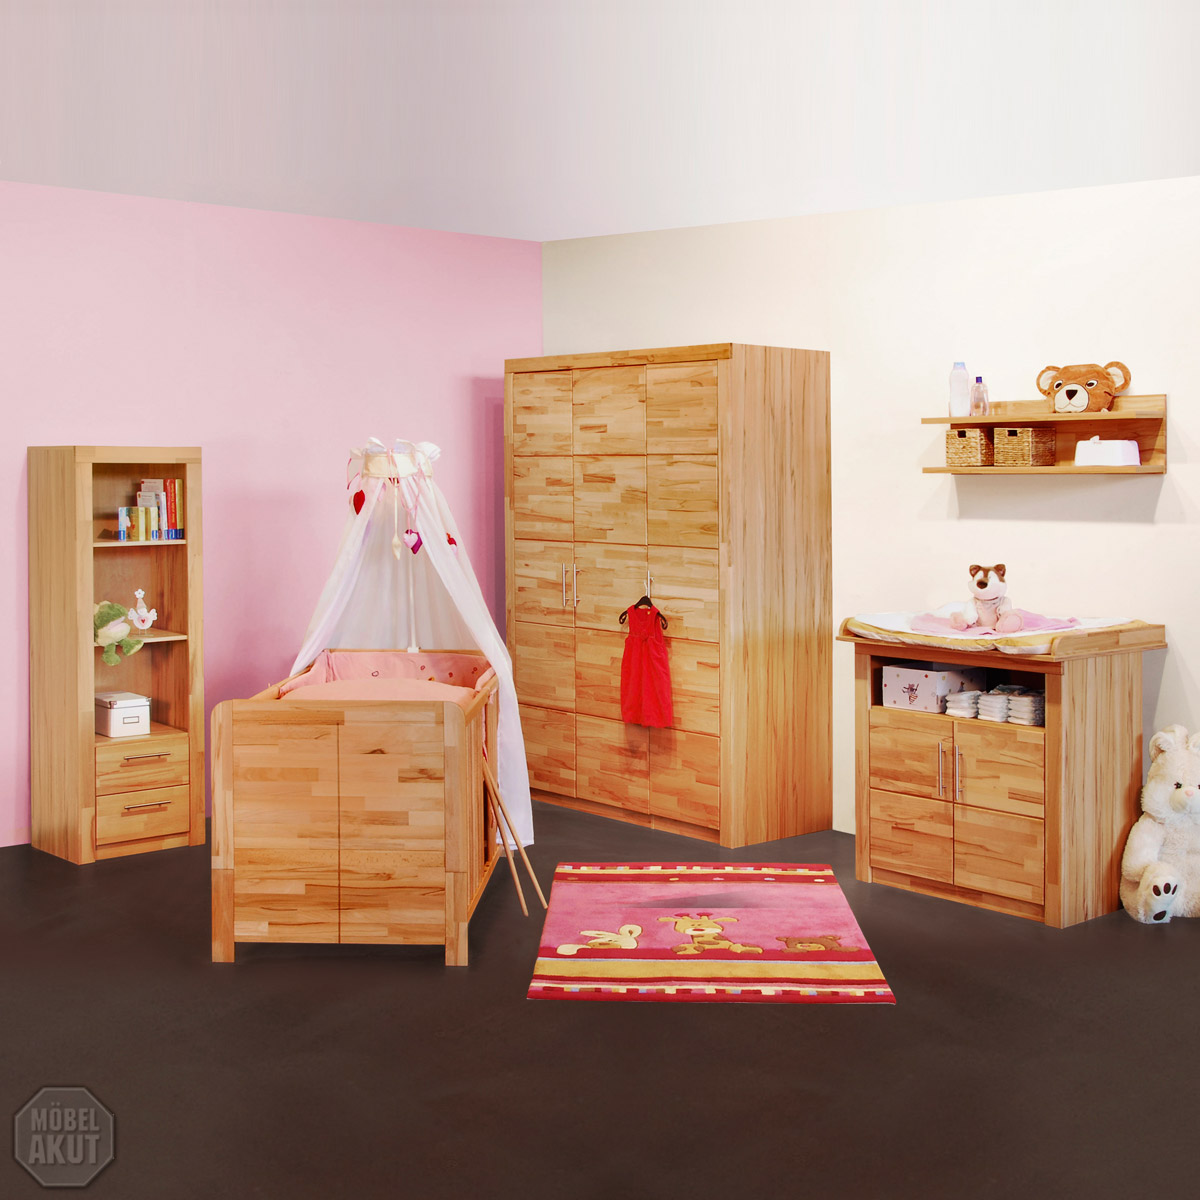 kommode zu verschenken berlin auch fertige m bel zu. Black Bedroom Furniture Sets. Home Design Ideas